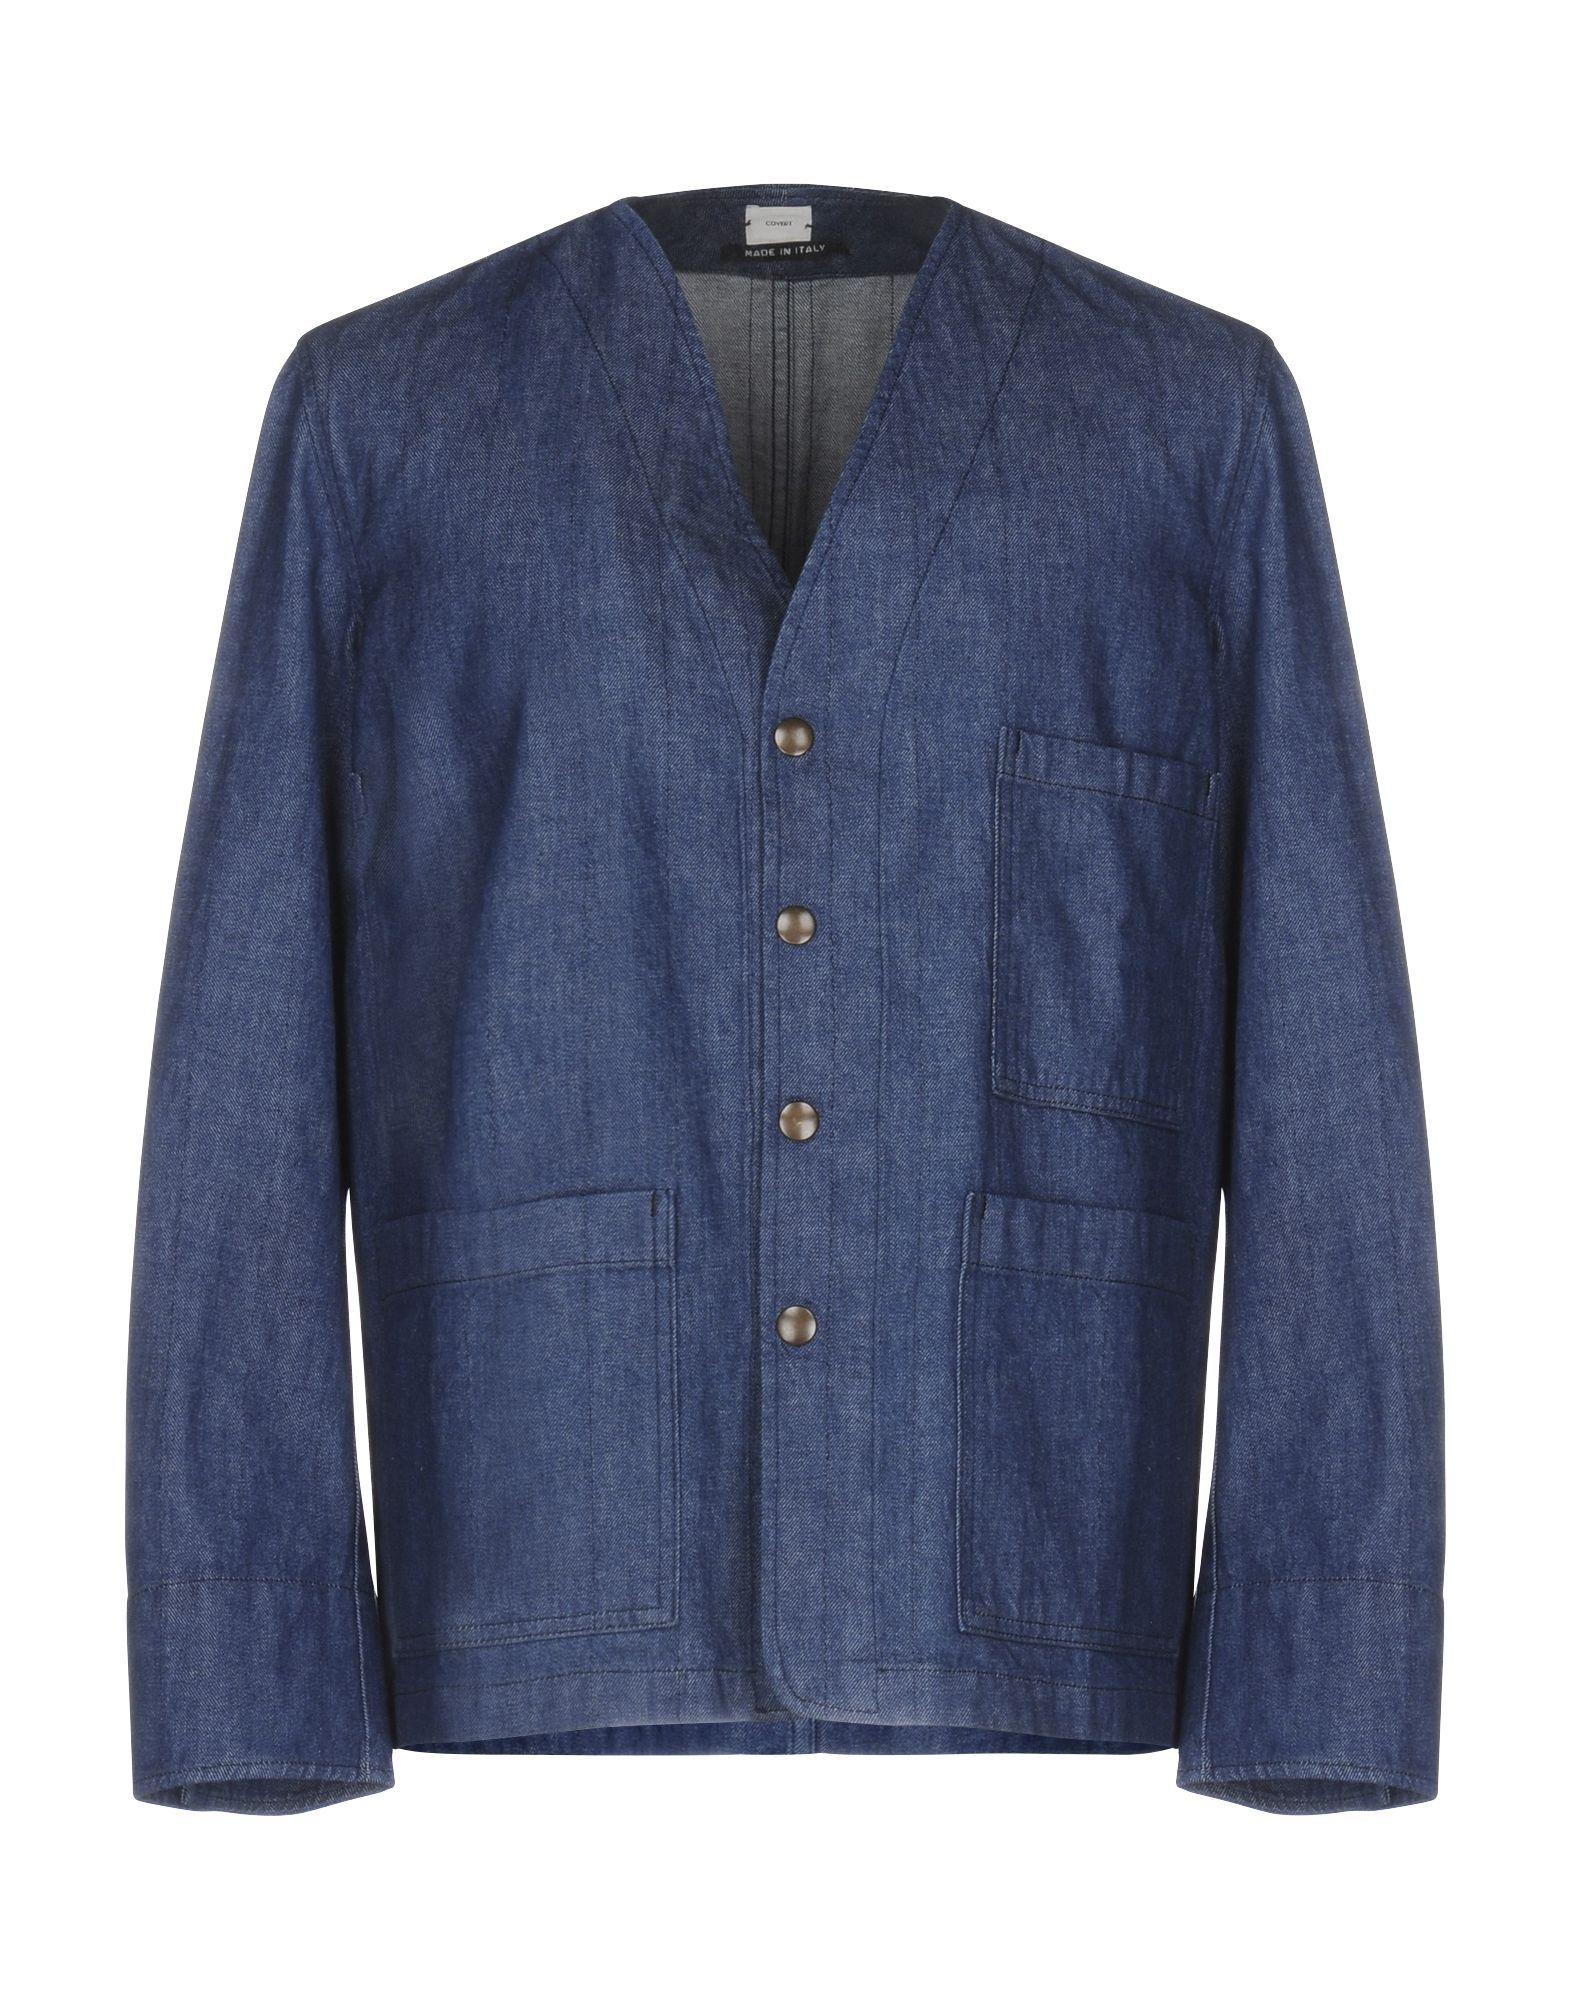 SUITS AND JACKETS Covert Blue Man Cotton